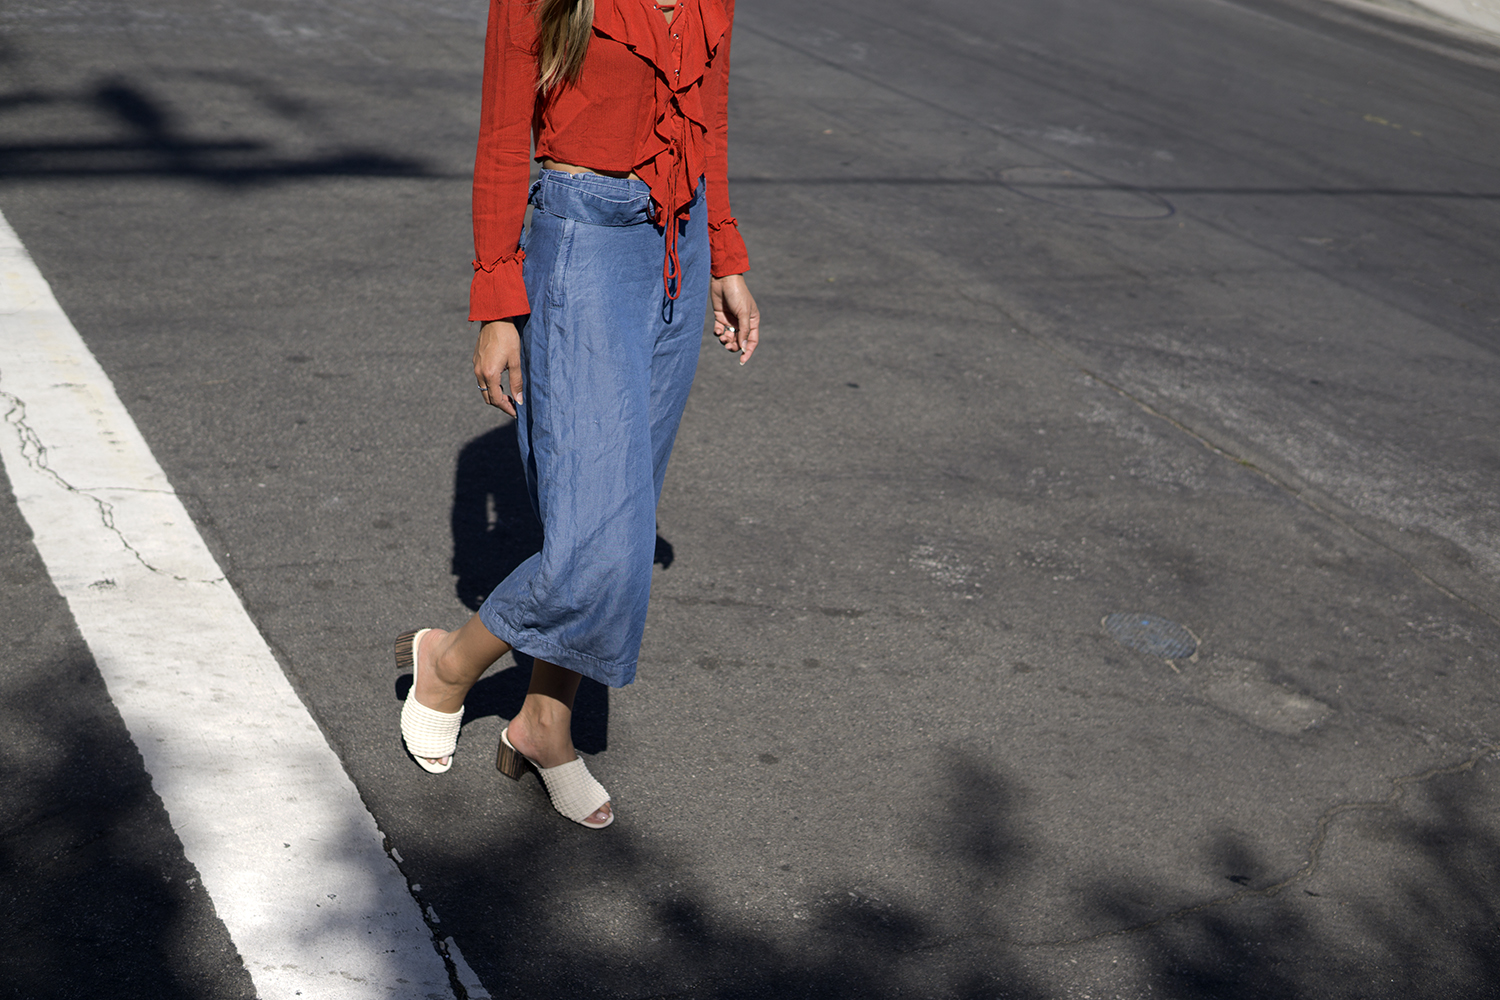 red, who what wear, who what wear collection, mules, ootd, melrodstyle, la blogger, latina blogger, hispanic blogger, mexican blogger, street style, blogger style, inspiration, fashion, trends, style, outfit